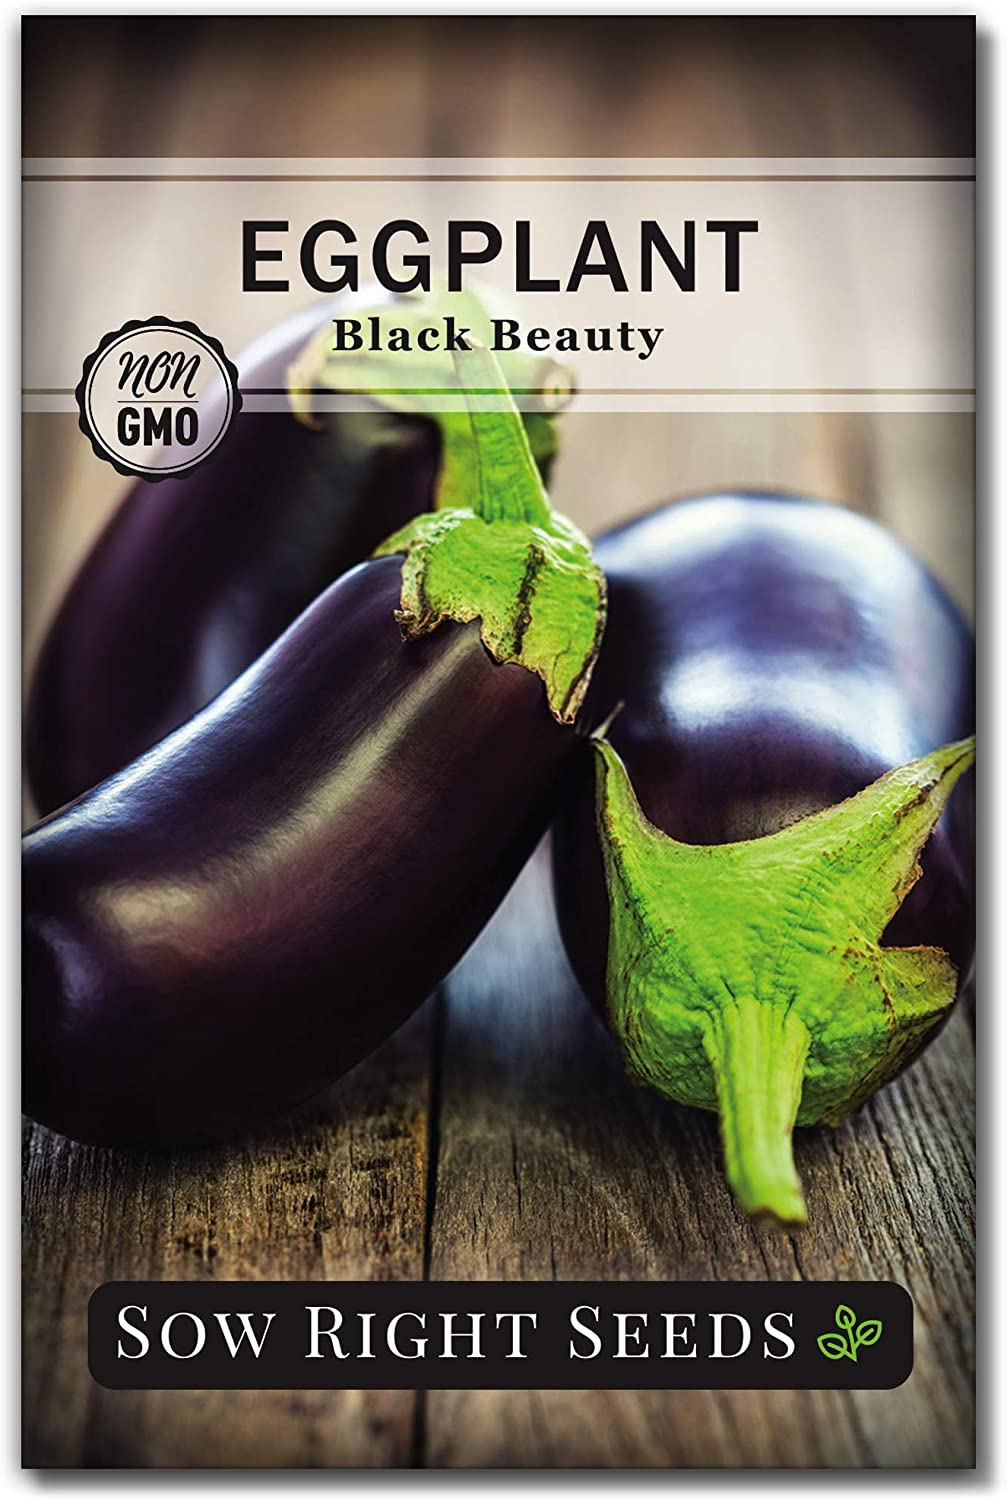 Sow Right Seeds - Black Beauty Eggplant Seed for Planting - Non-GMO Heirloom Packet with Instructions to Plant an Outdoor Home Vegetable Garden - Great Gardening Gift (1)